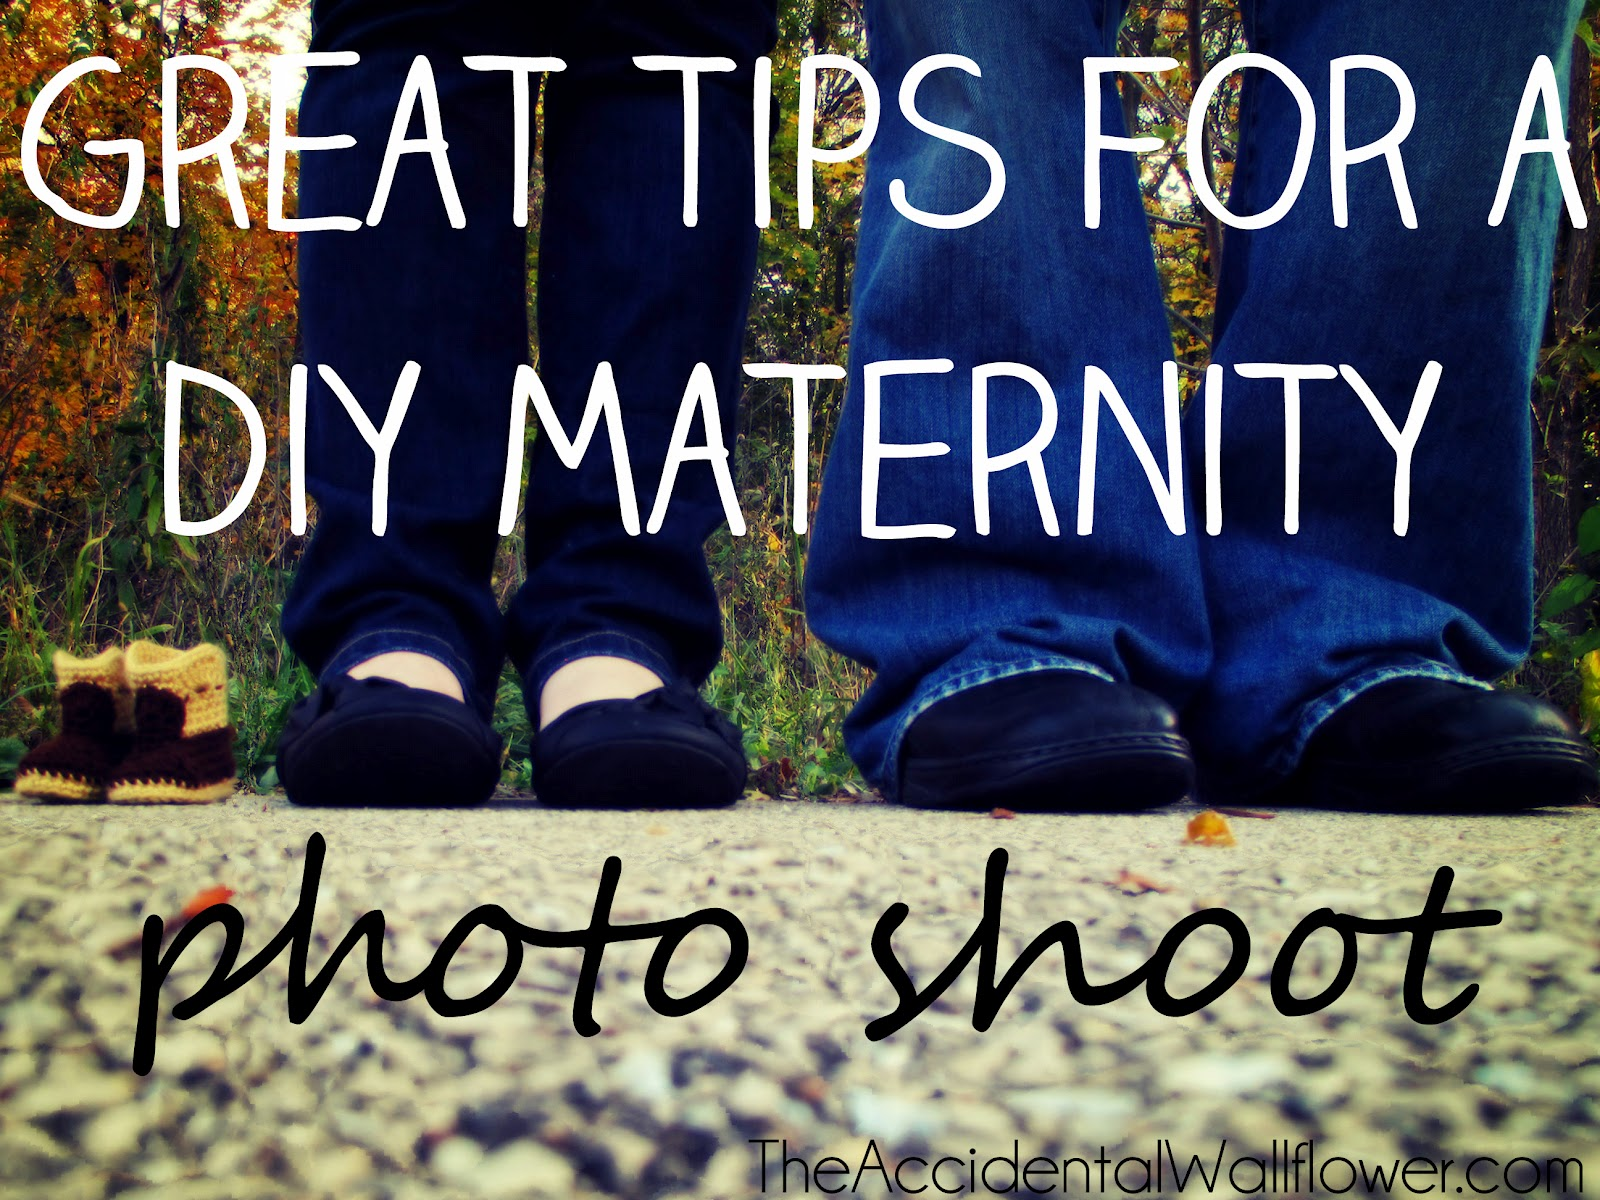 Lovely diy maternity photo ideas selection photo and picture ideas diy maternity photo ideas diy maternity shoot tips the accidental wallflower solutioingenieria Image collections